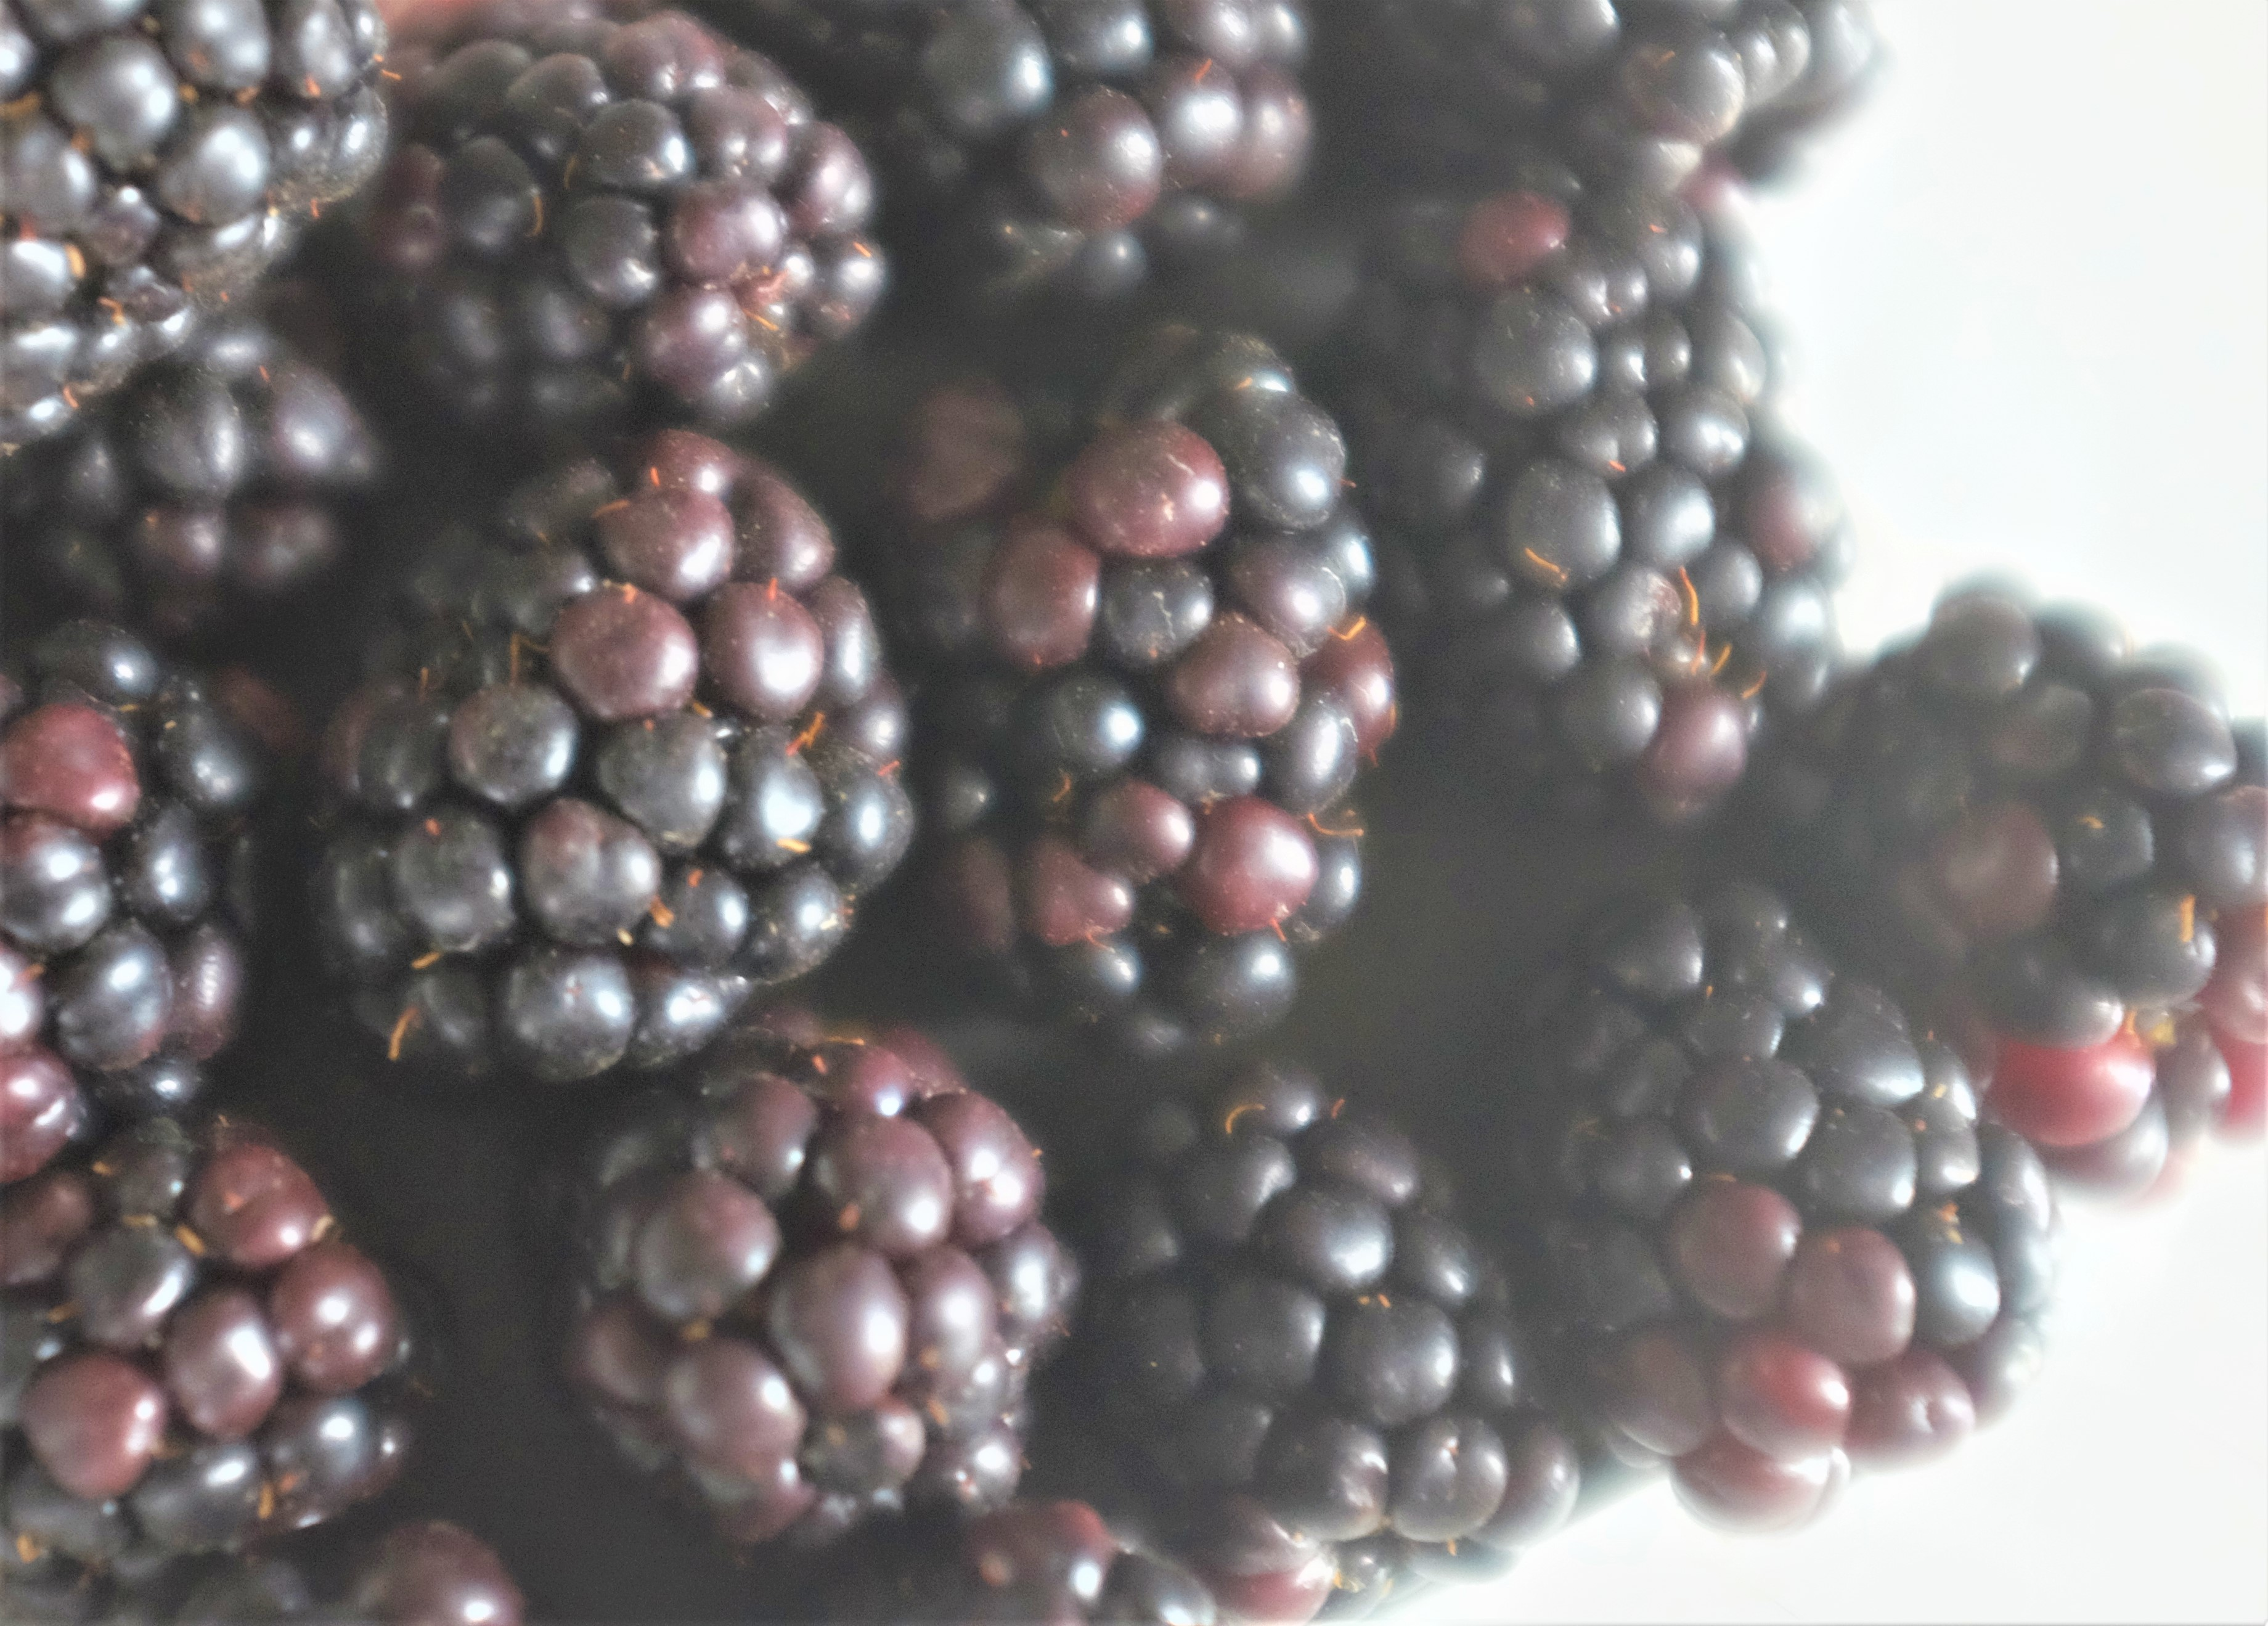 Blackberries up close